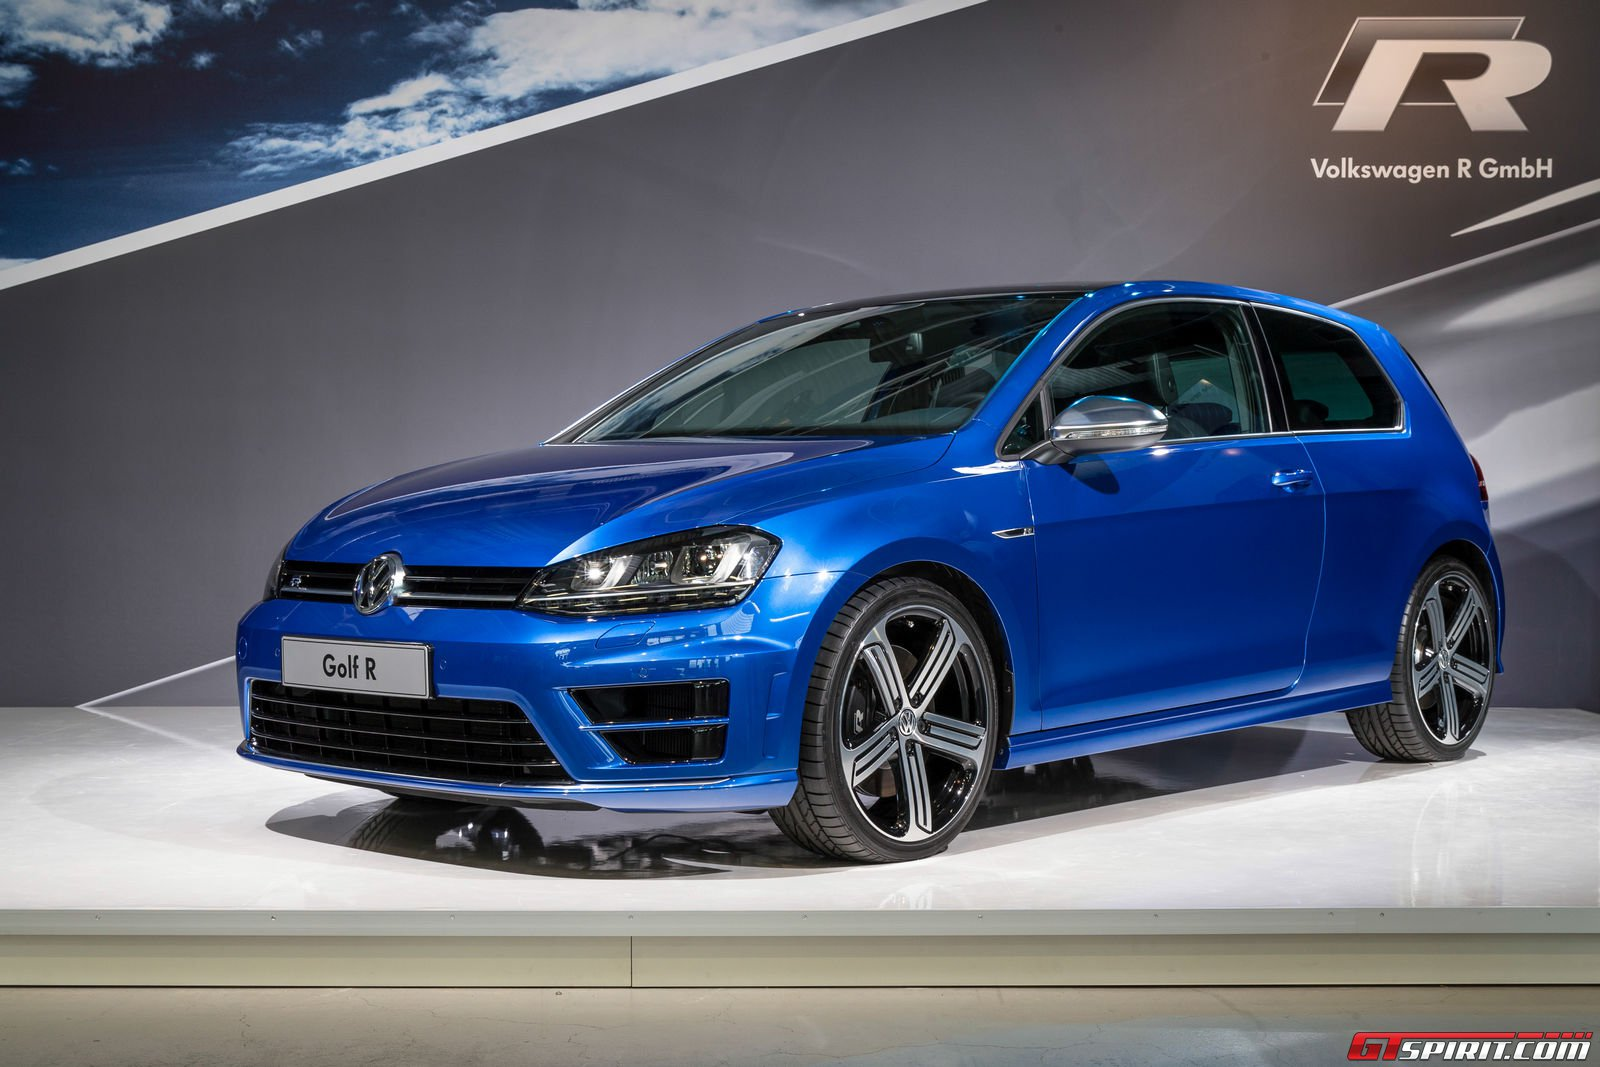 2015 volkswagen golf r official unveil gallery gtspirit. Black Bedroom Furniture Sets. Home Design Ideas